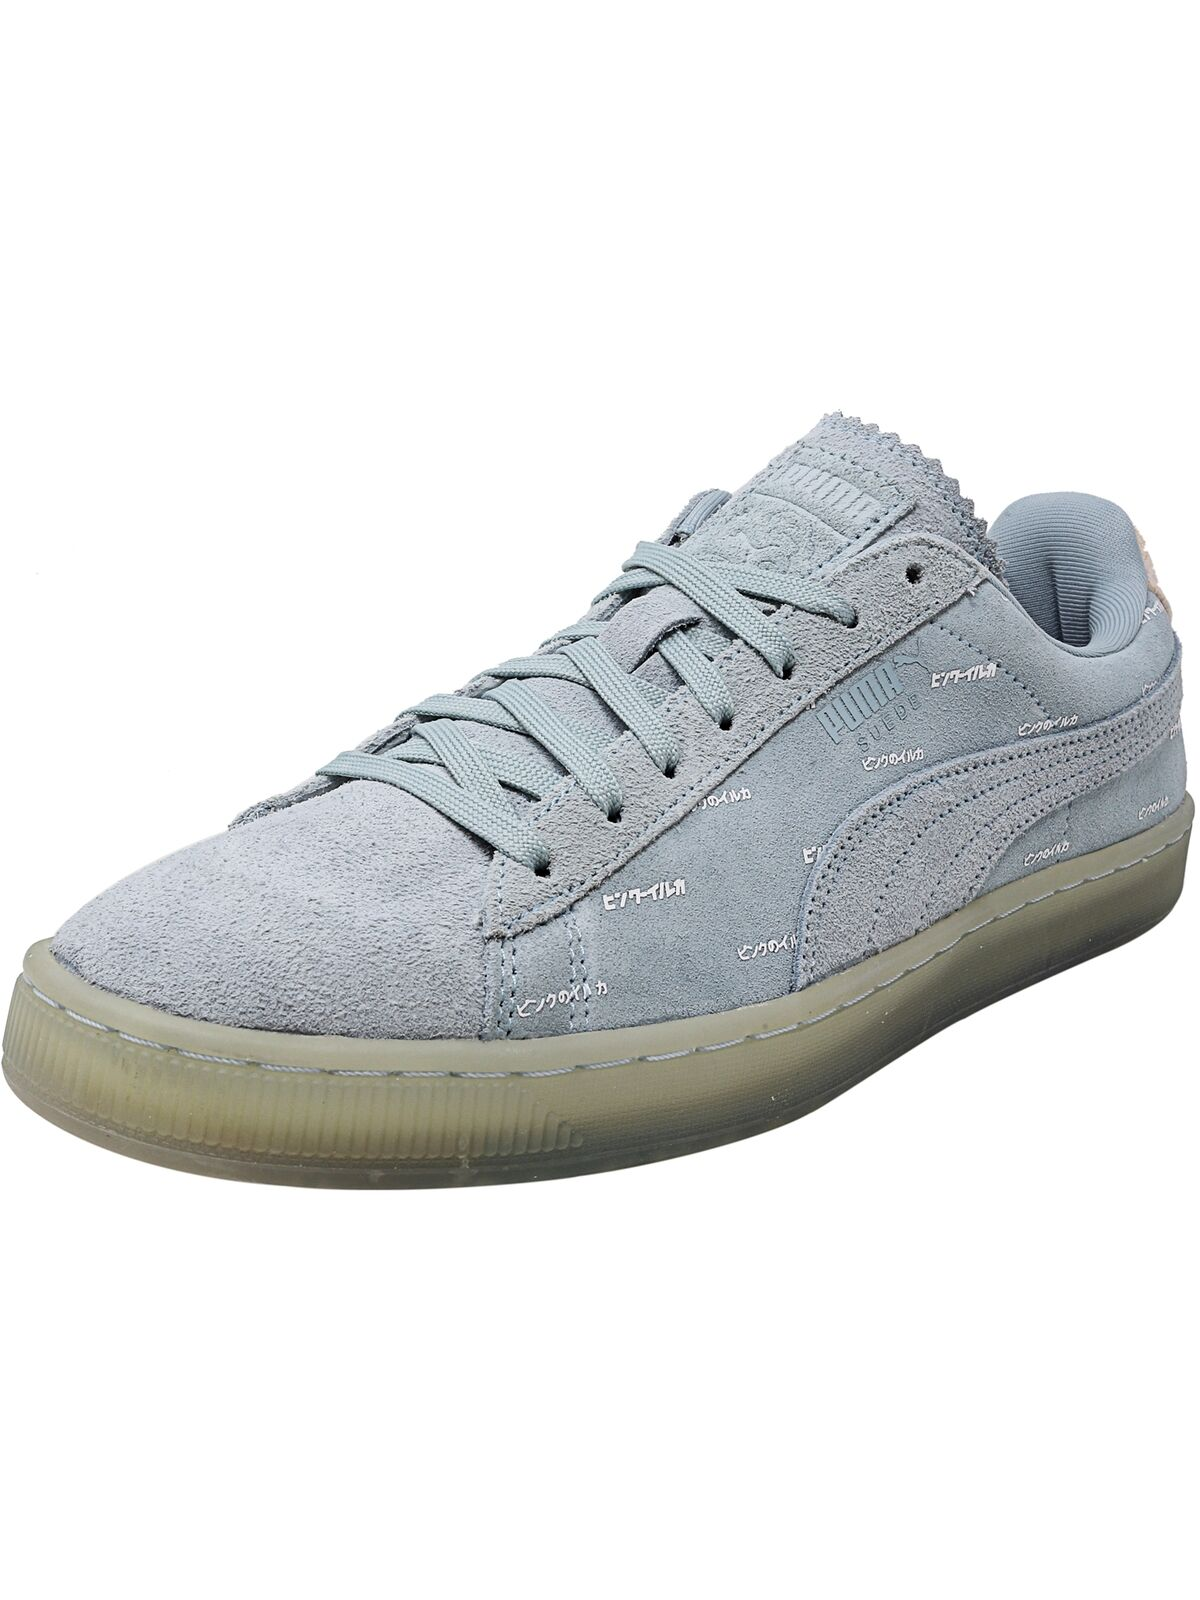 Puma Men's V2 Pink Dolphin Ankle-High Suede Fashion Sneaker